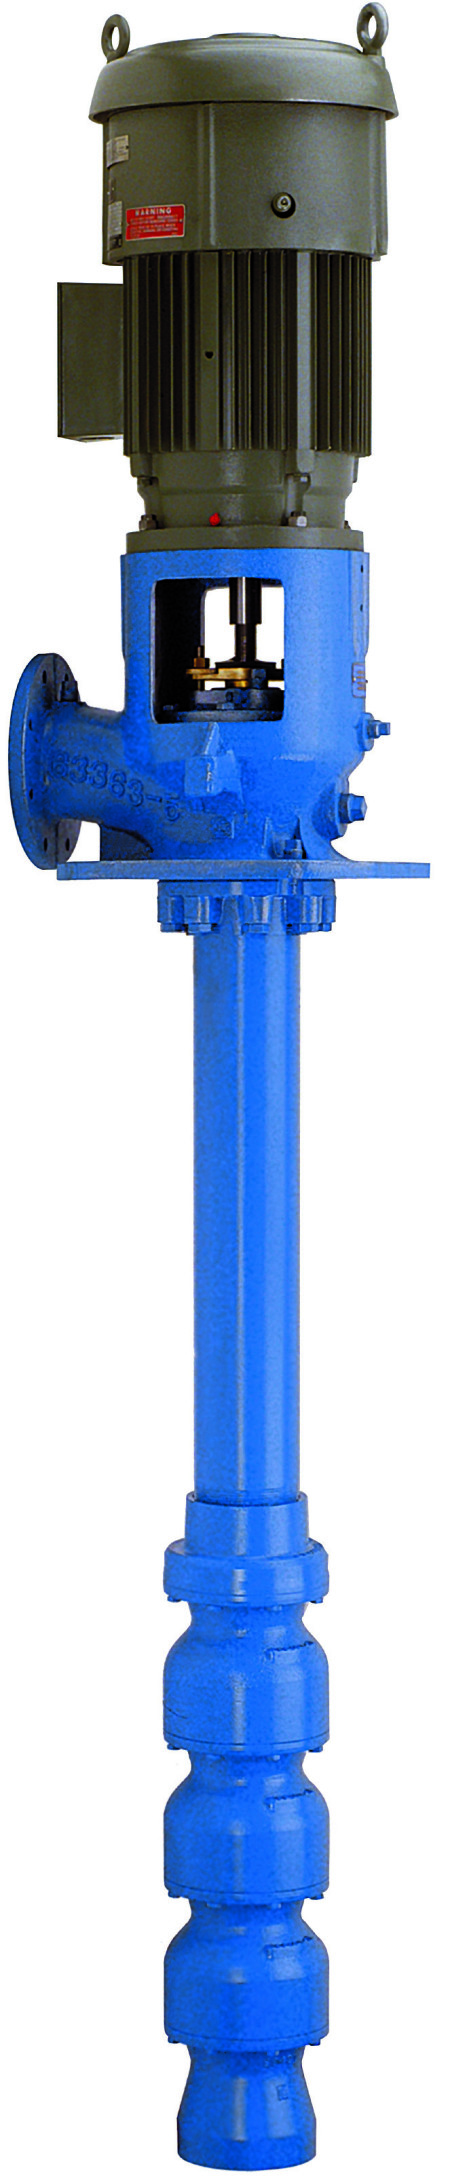 hight resolution of dwt deep well turbine borehole pumps